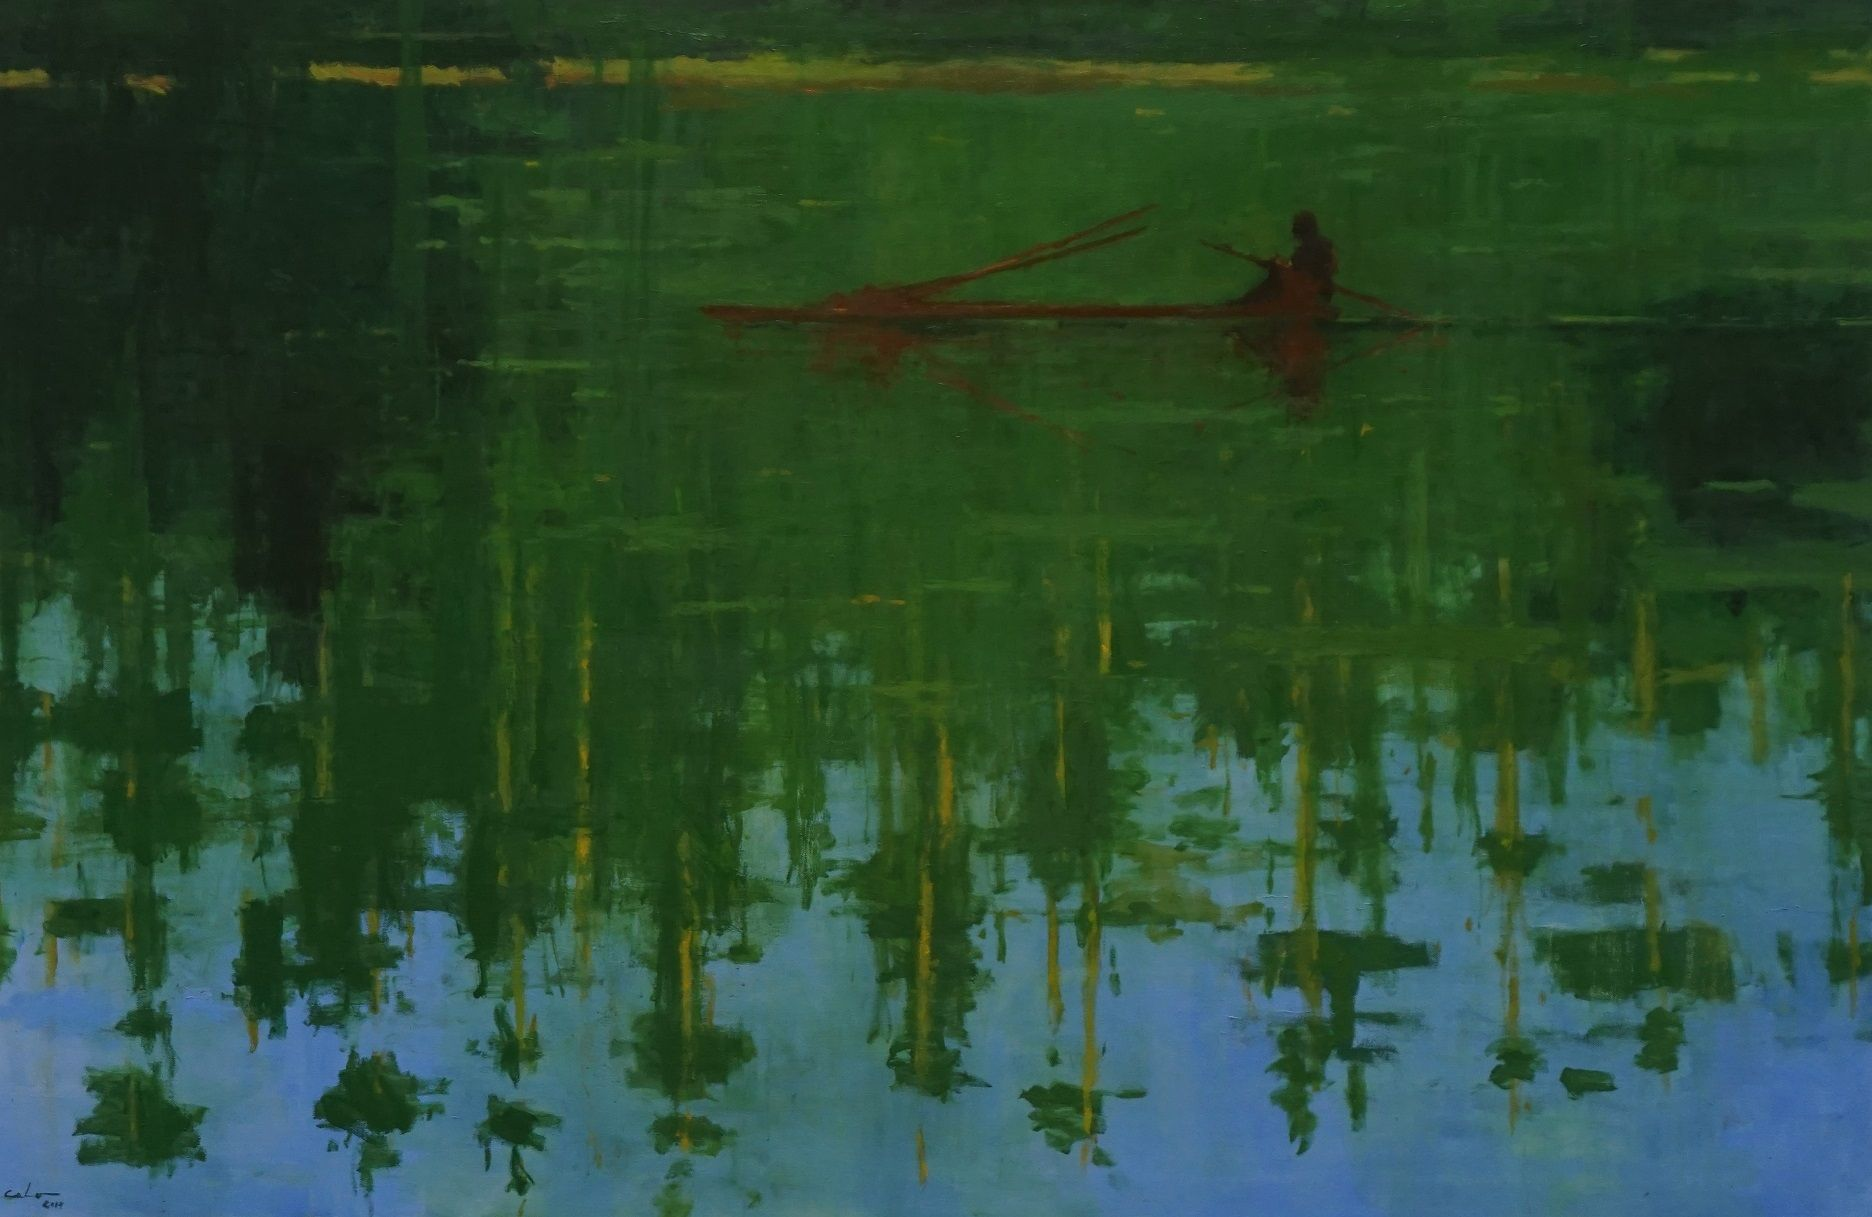 Reflection n°6, Jungle series - Calo  Carratalá - Contemporary painting